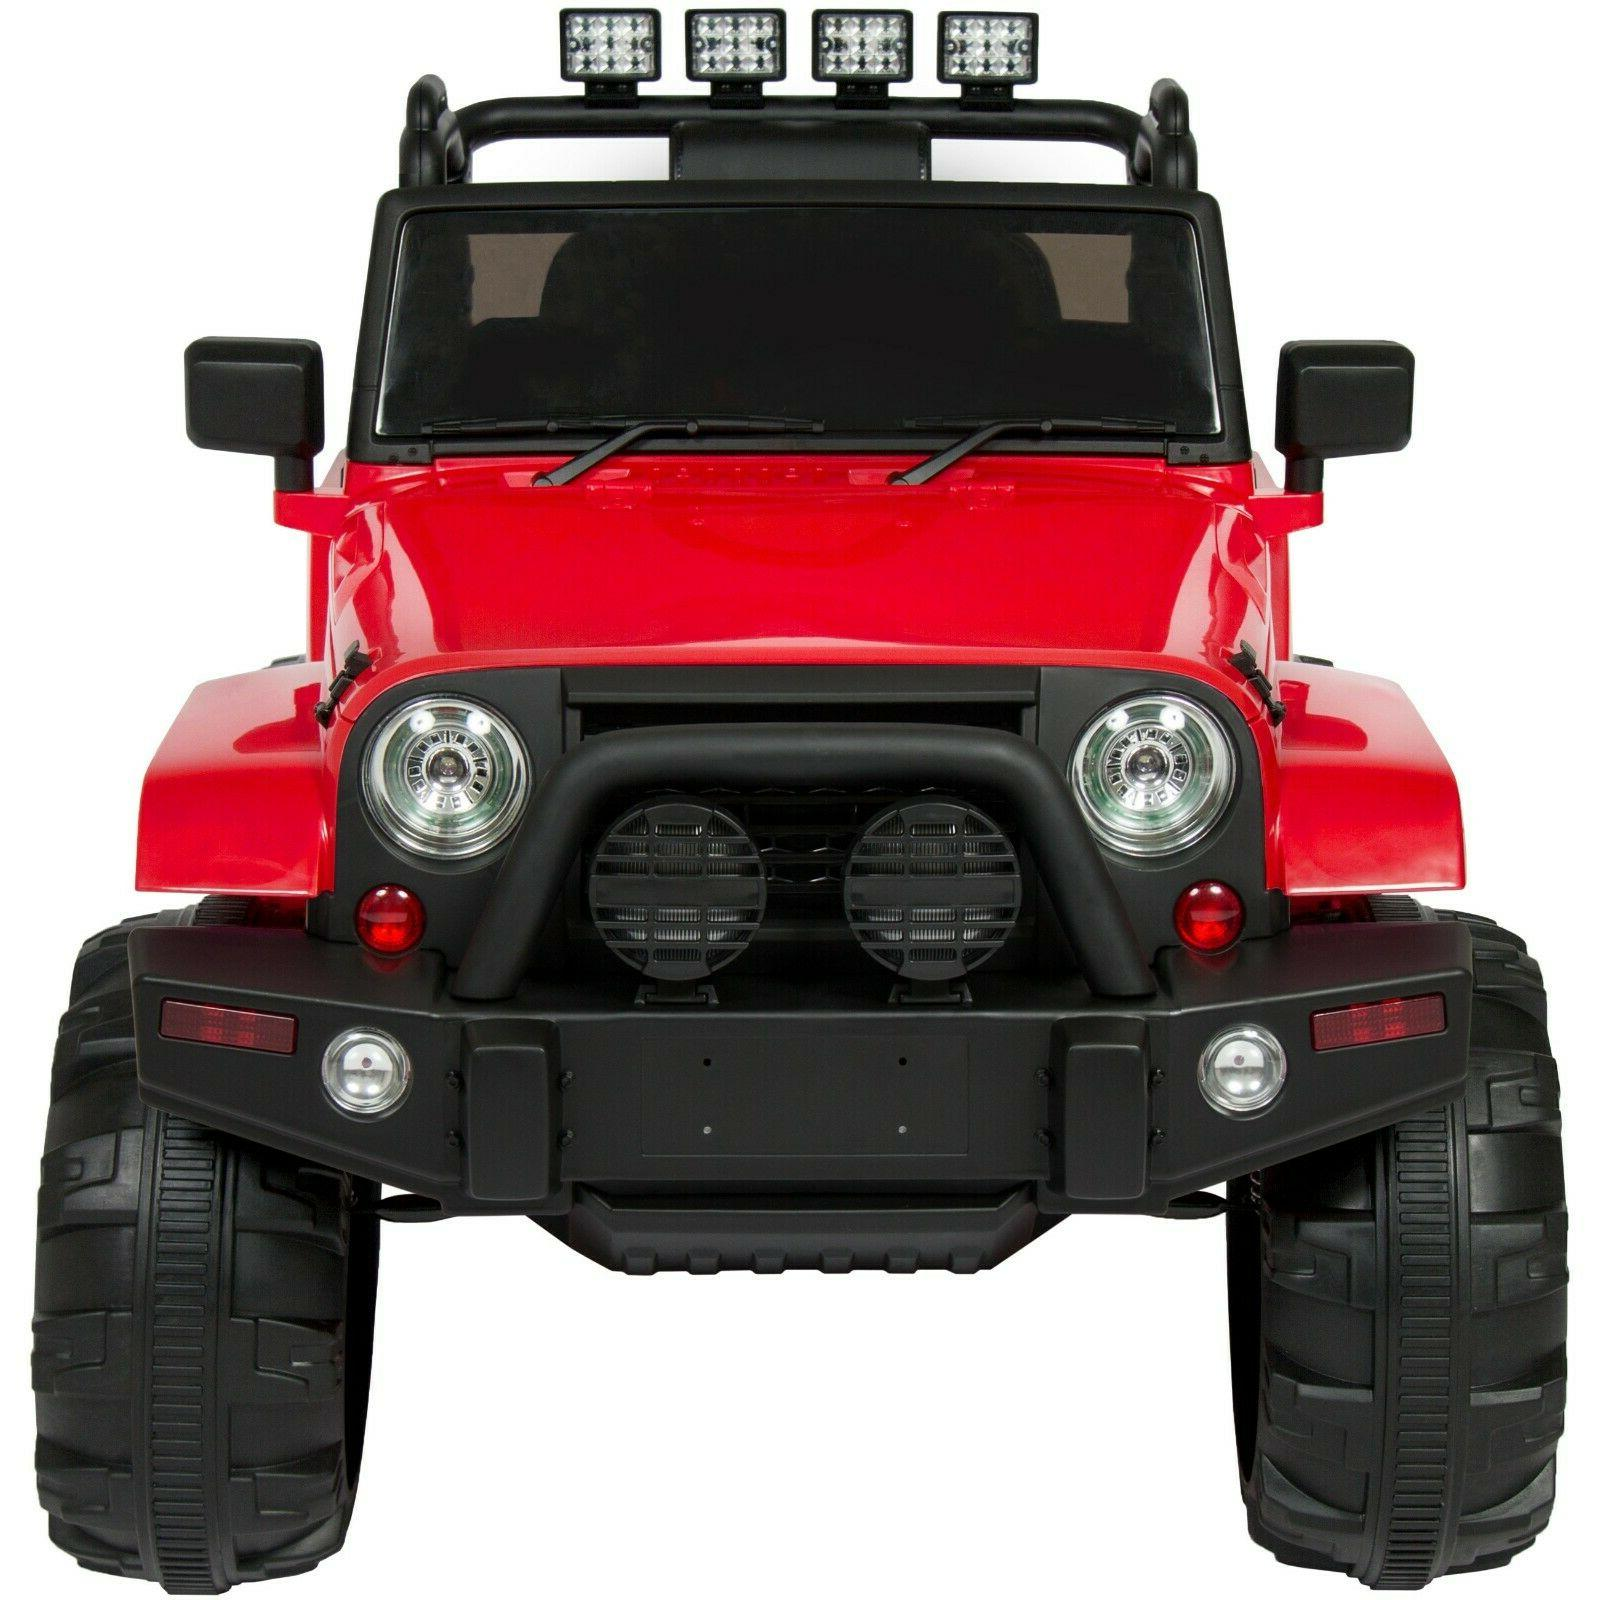 Ride-On Truck Electric Kids Toddler